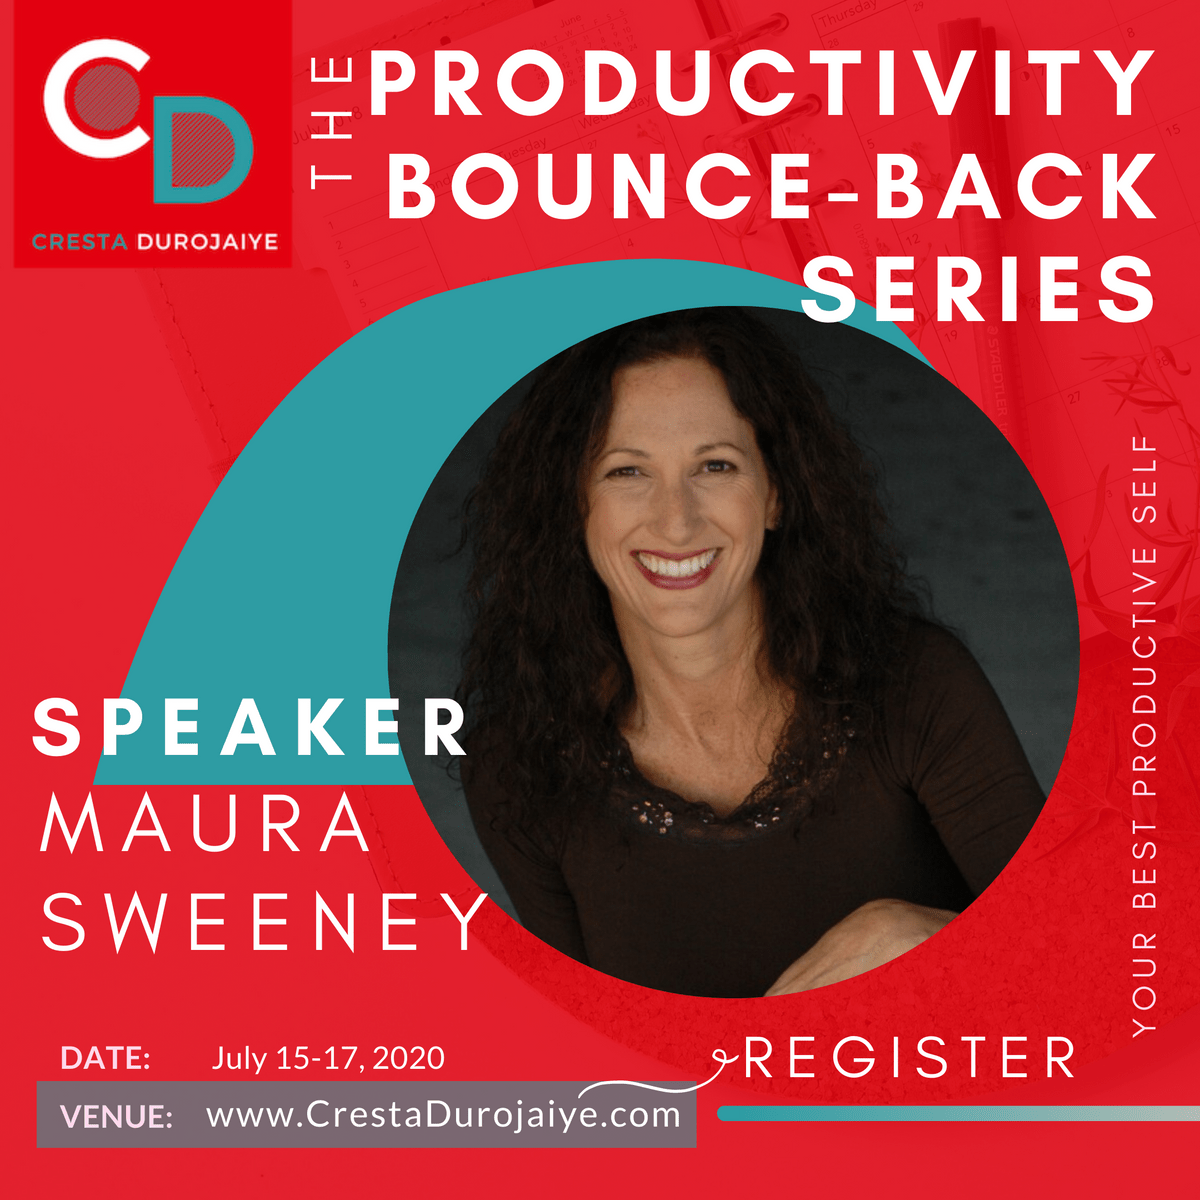 Maura Sweeney is speaking at The Productivity Bounce Back Series